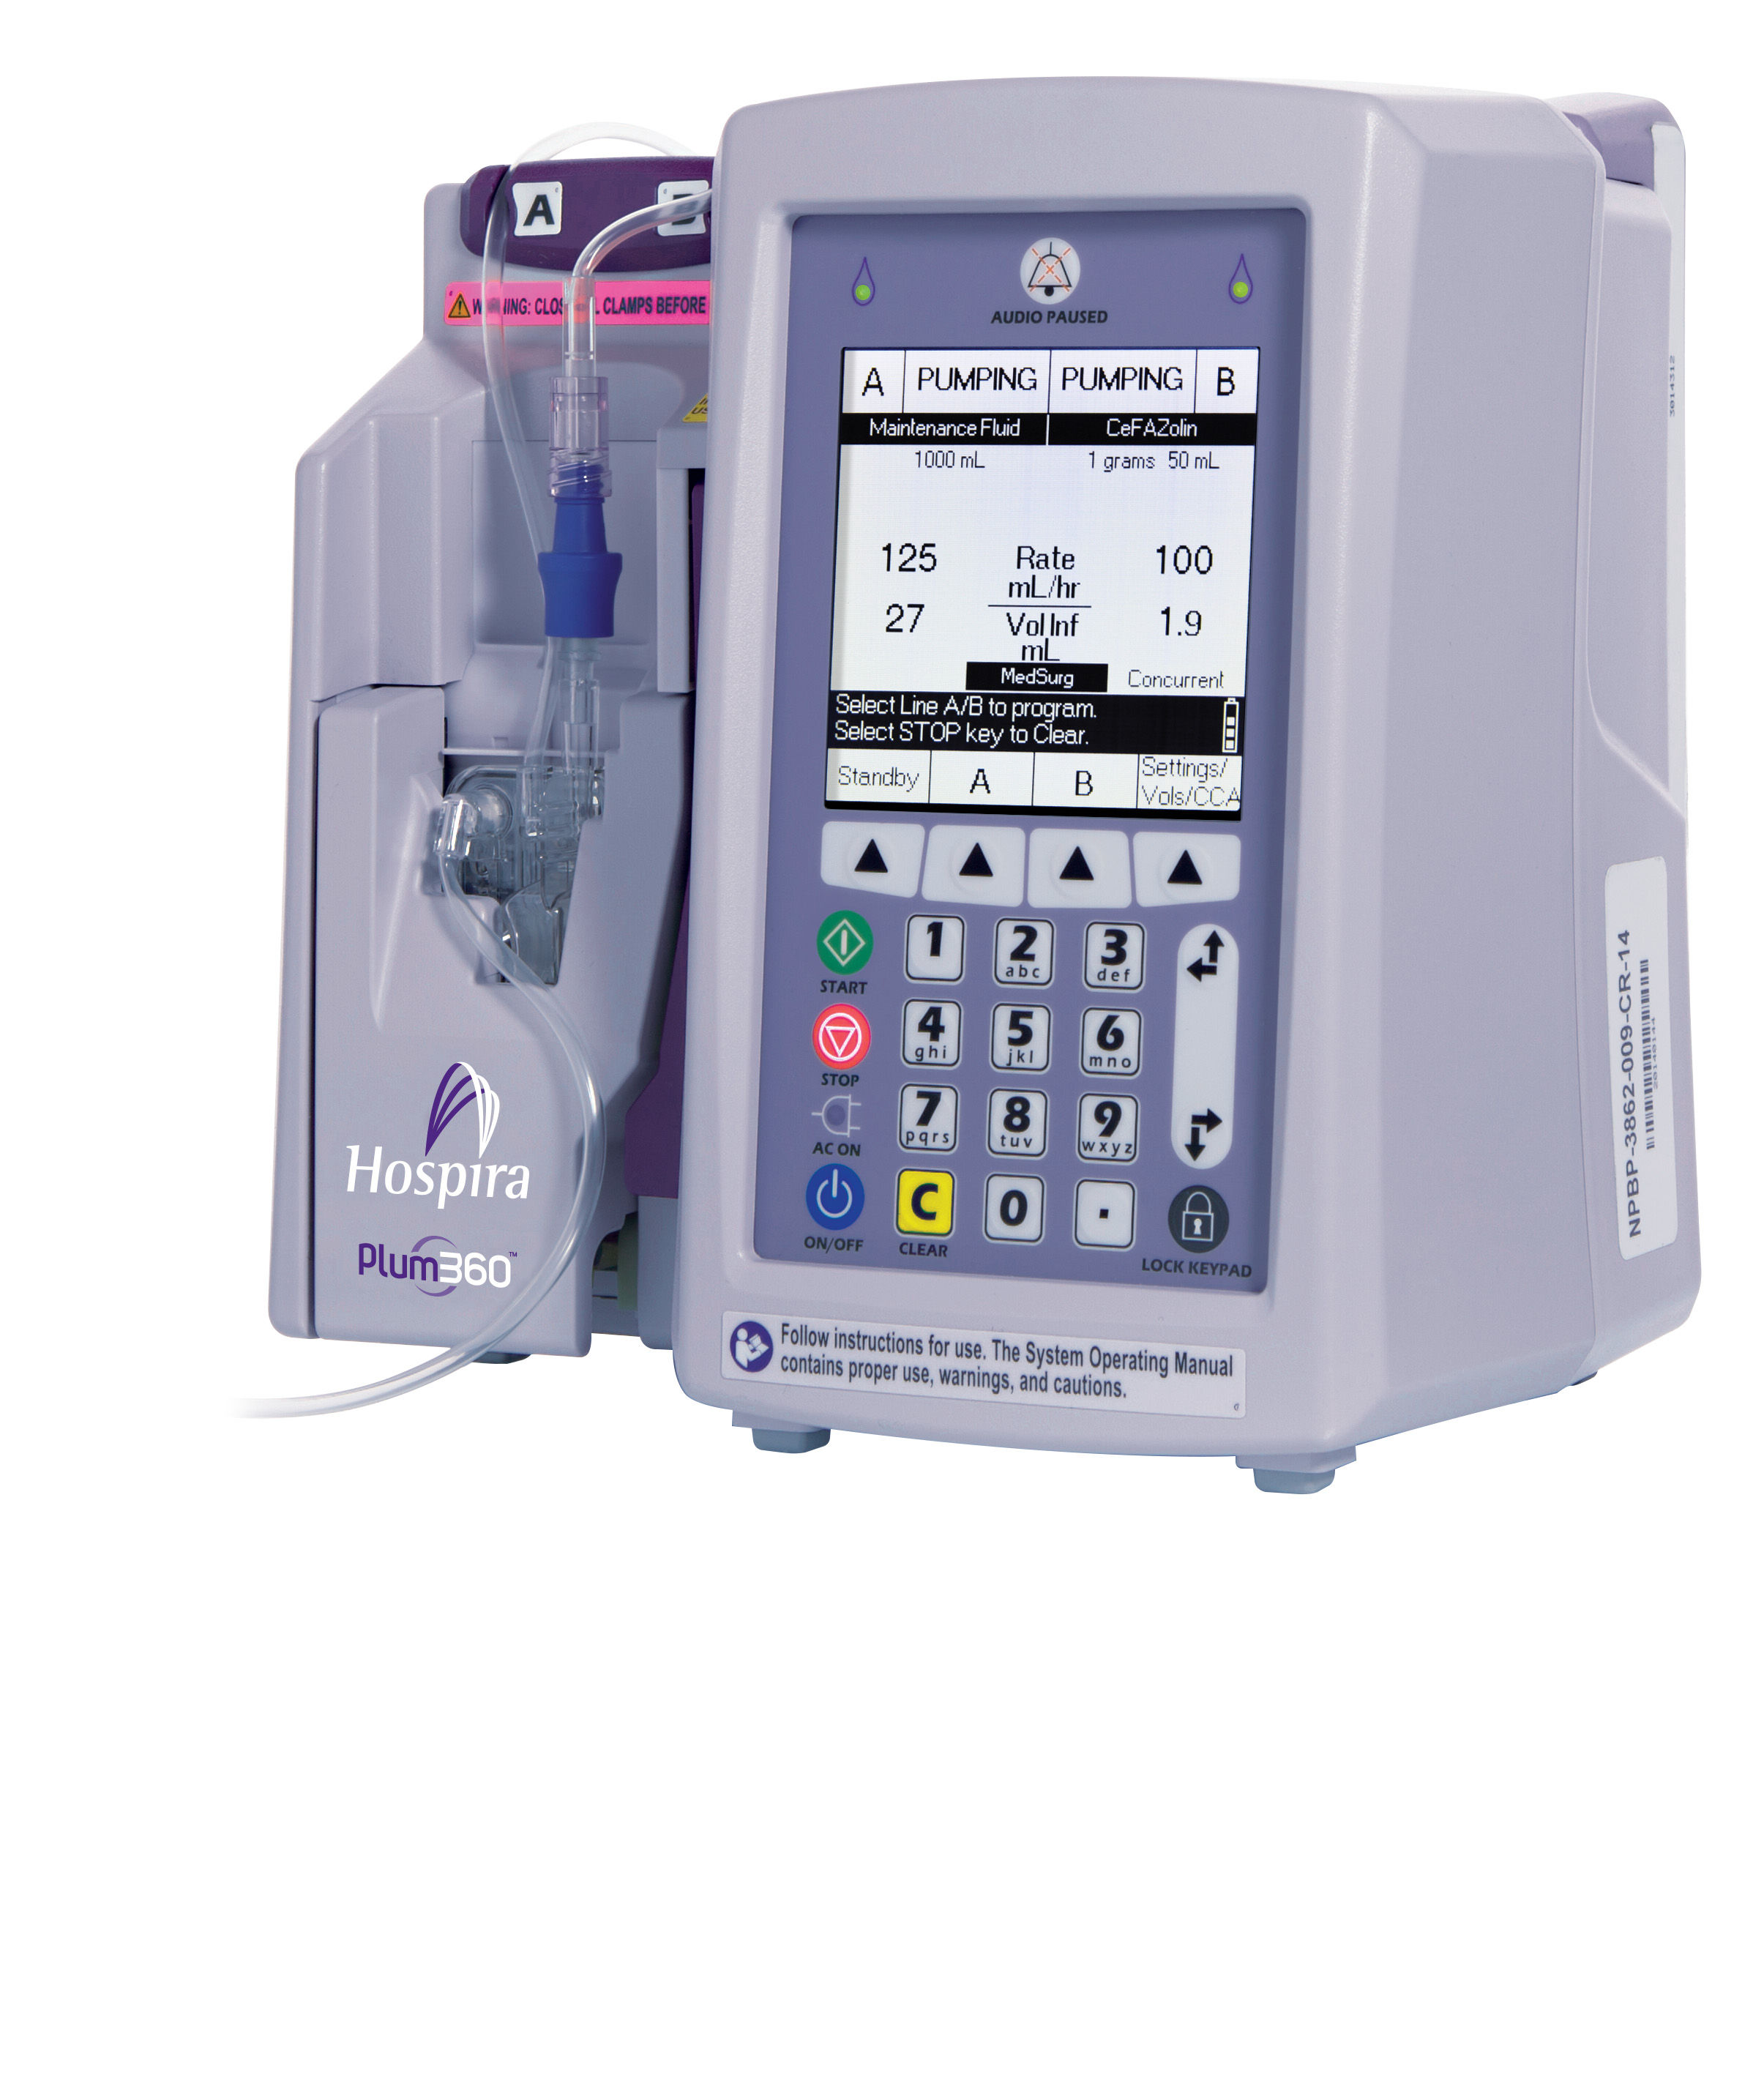 Hospira Plum360 Infusion System Pump Iv Infusion Model